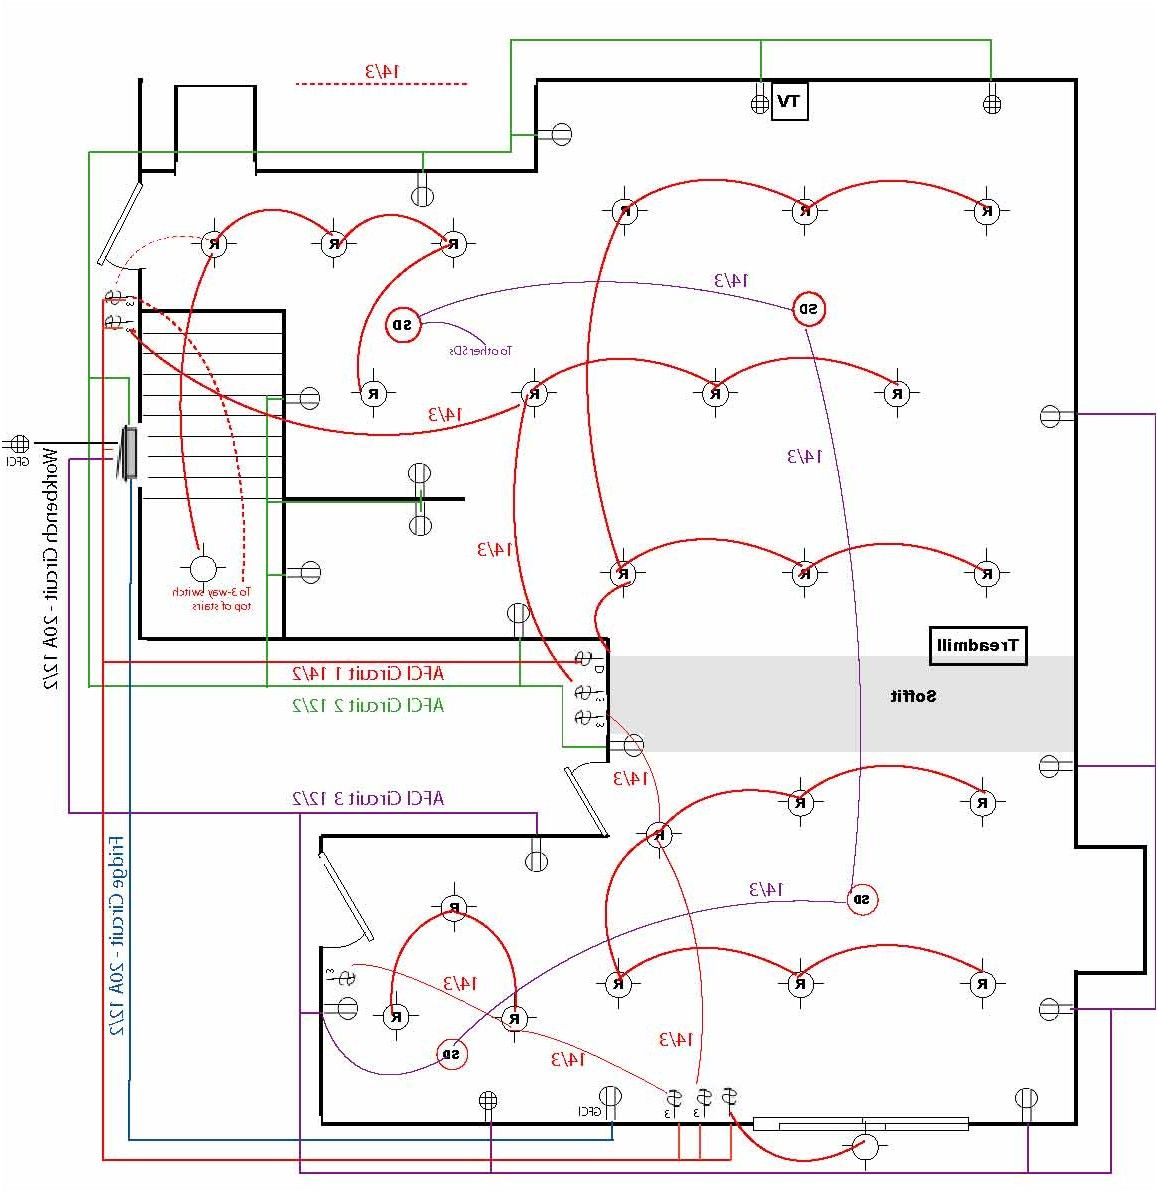 basement wiring diagram review for how to wire a diagram from rh pinterest com Residential Electrical Wiring Diagrams Home Electrical Wiring Diagrams